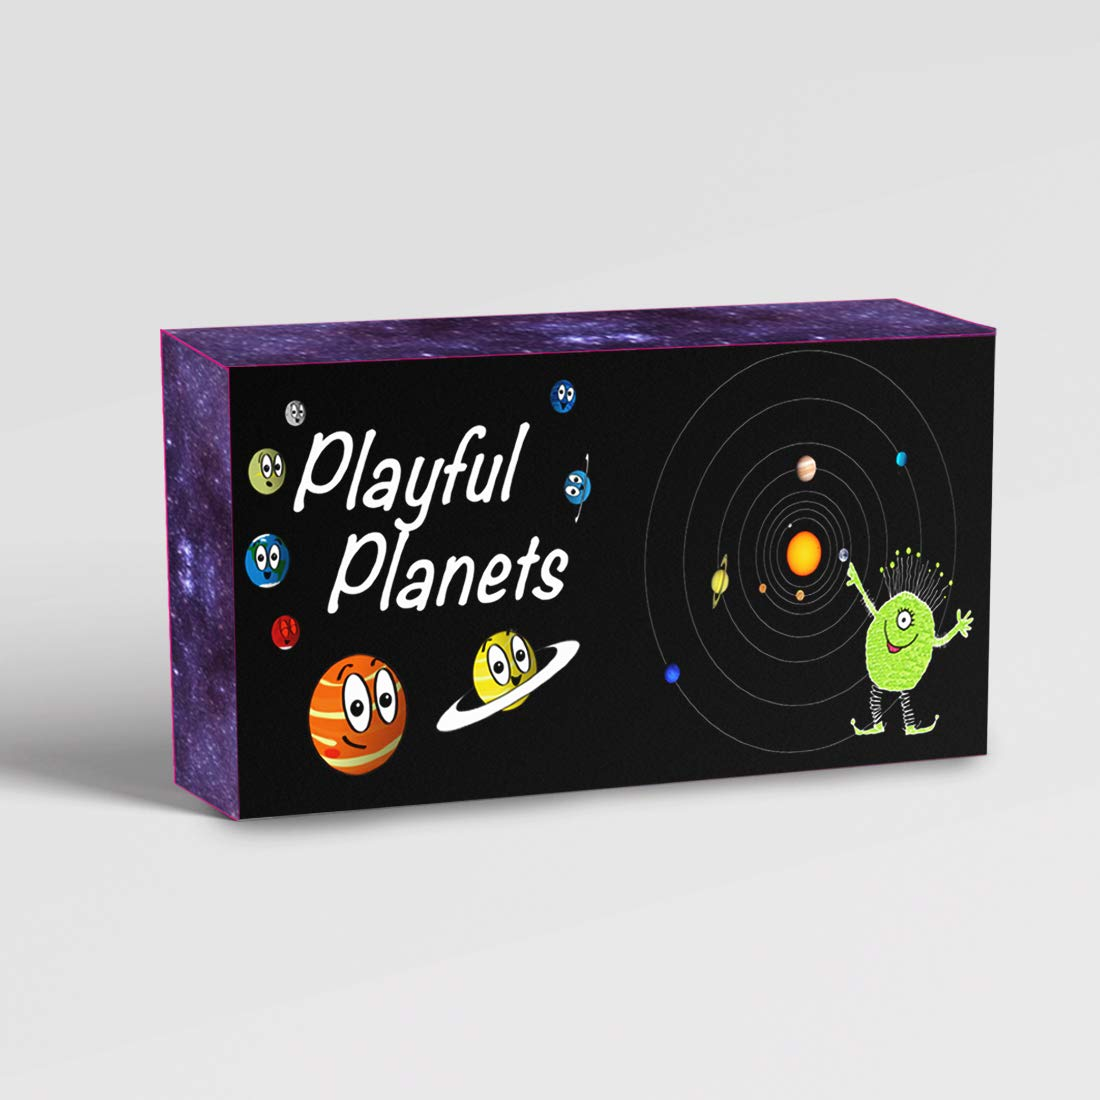 Playful Planets Classic Card Games for Kids and Families - Old Maid, Go Fish, Bingo, Memory with A Planetary Twist - Fun Packed Educational Space Game! 10 Games in 1 Fun Pack! by Playful Planets